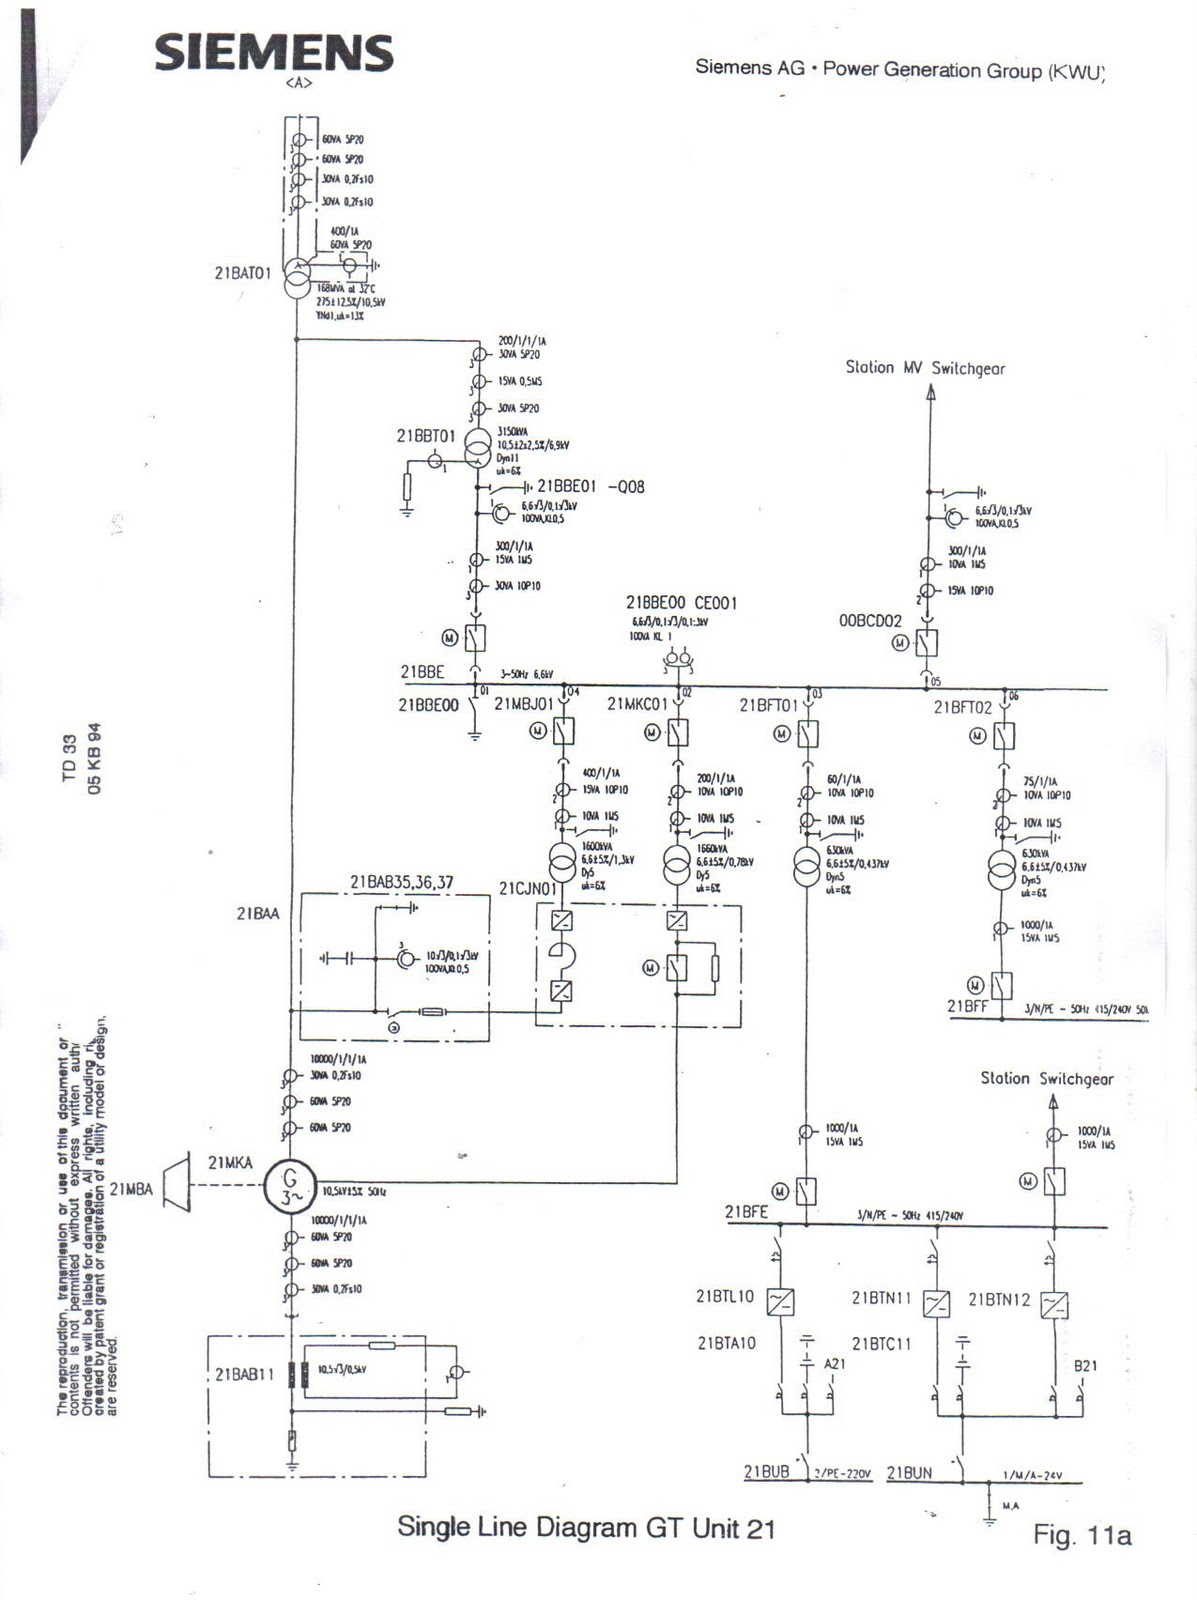 gt and st single line diagram [ 1197 x 1600 Pixel ]